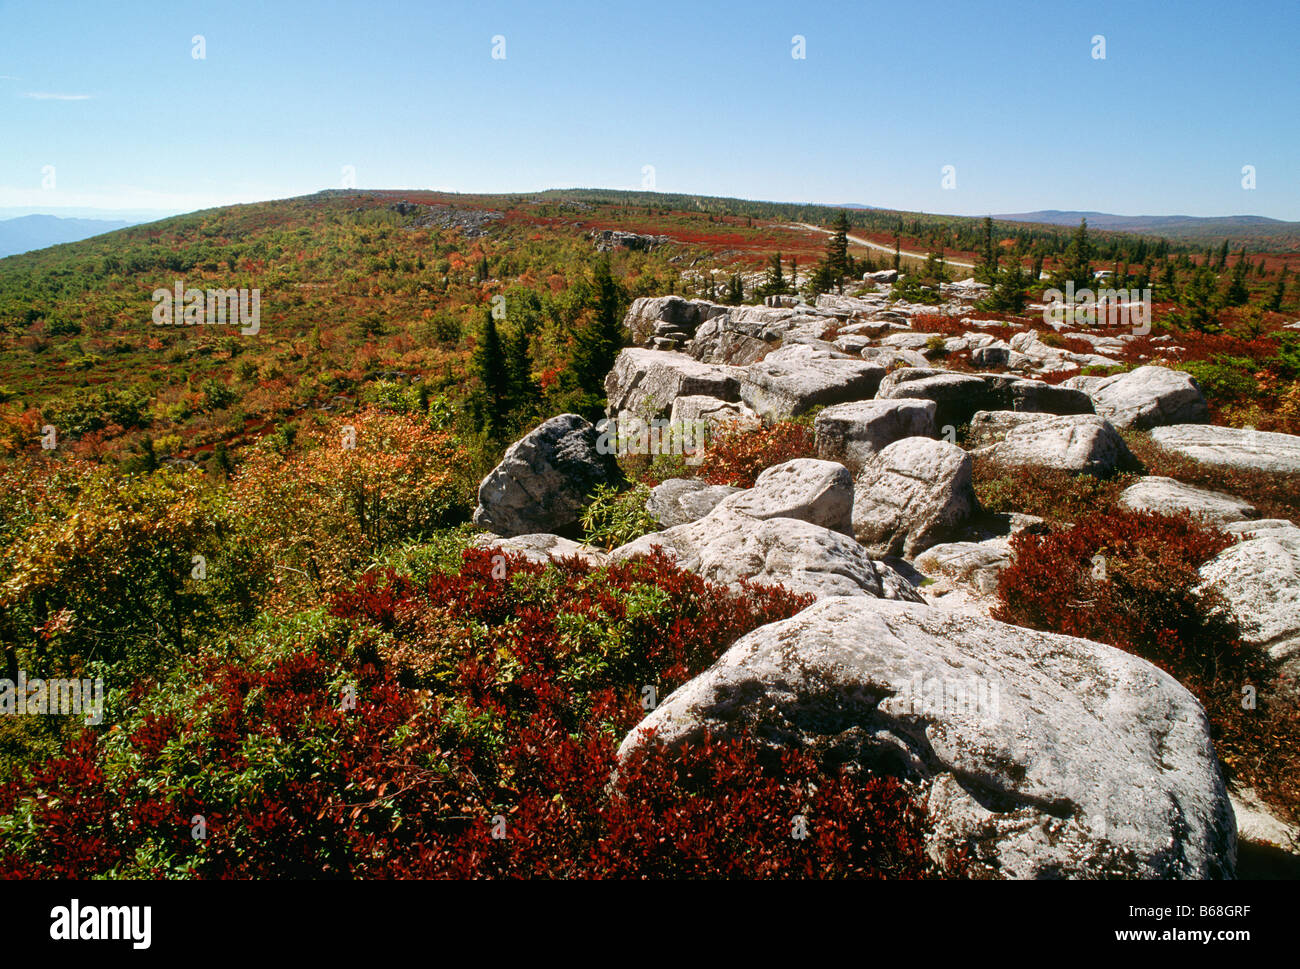 Mountain overlook Dolly Sods West Virginia - Stock Image